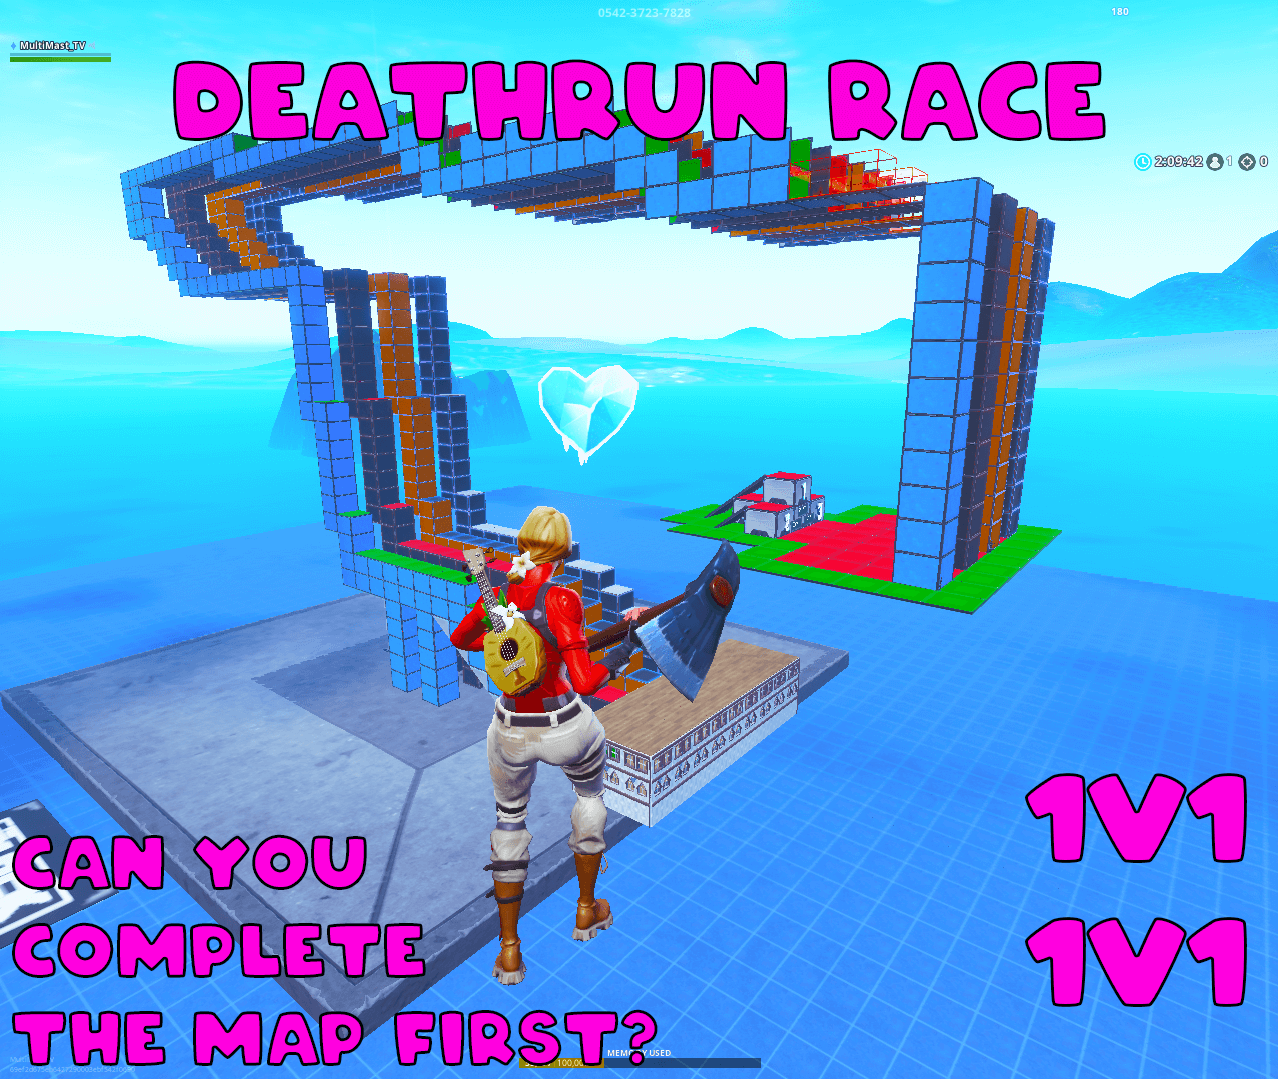 THE ULTIMATE 4 PERSON DEATHRUN RACE